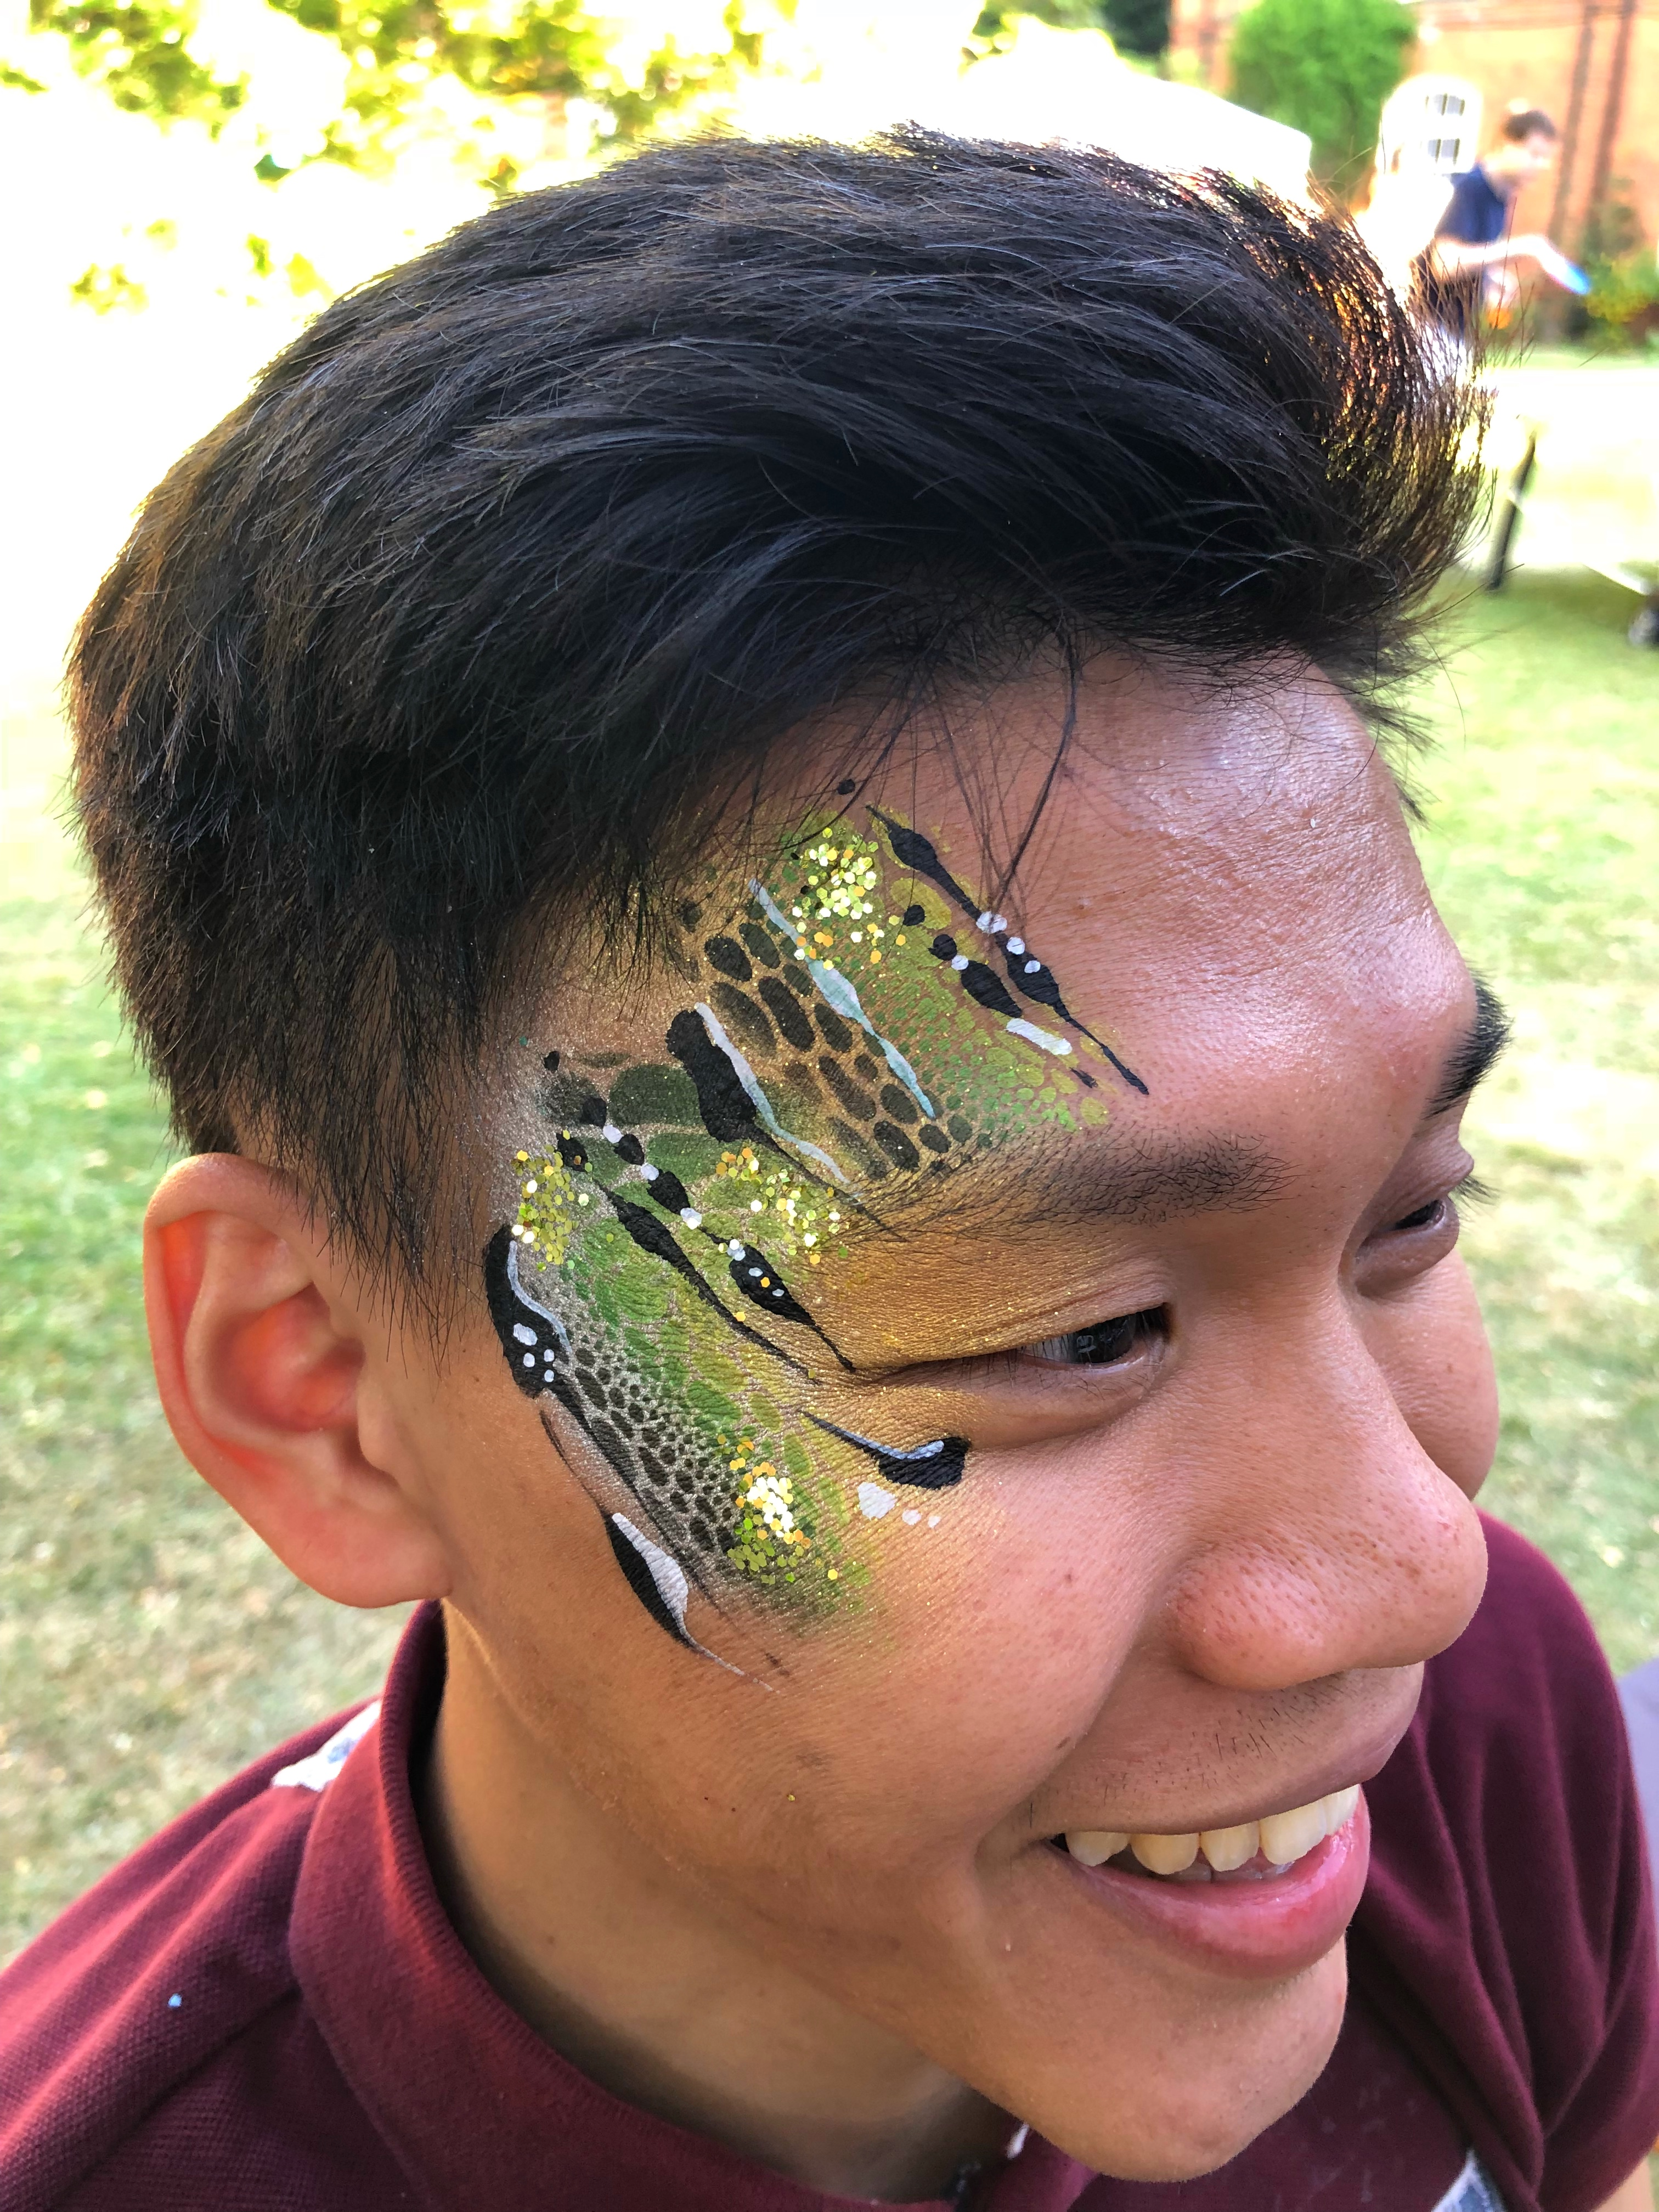 Snake eye face paint